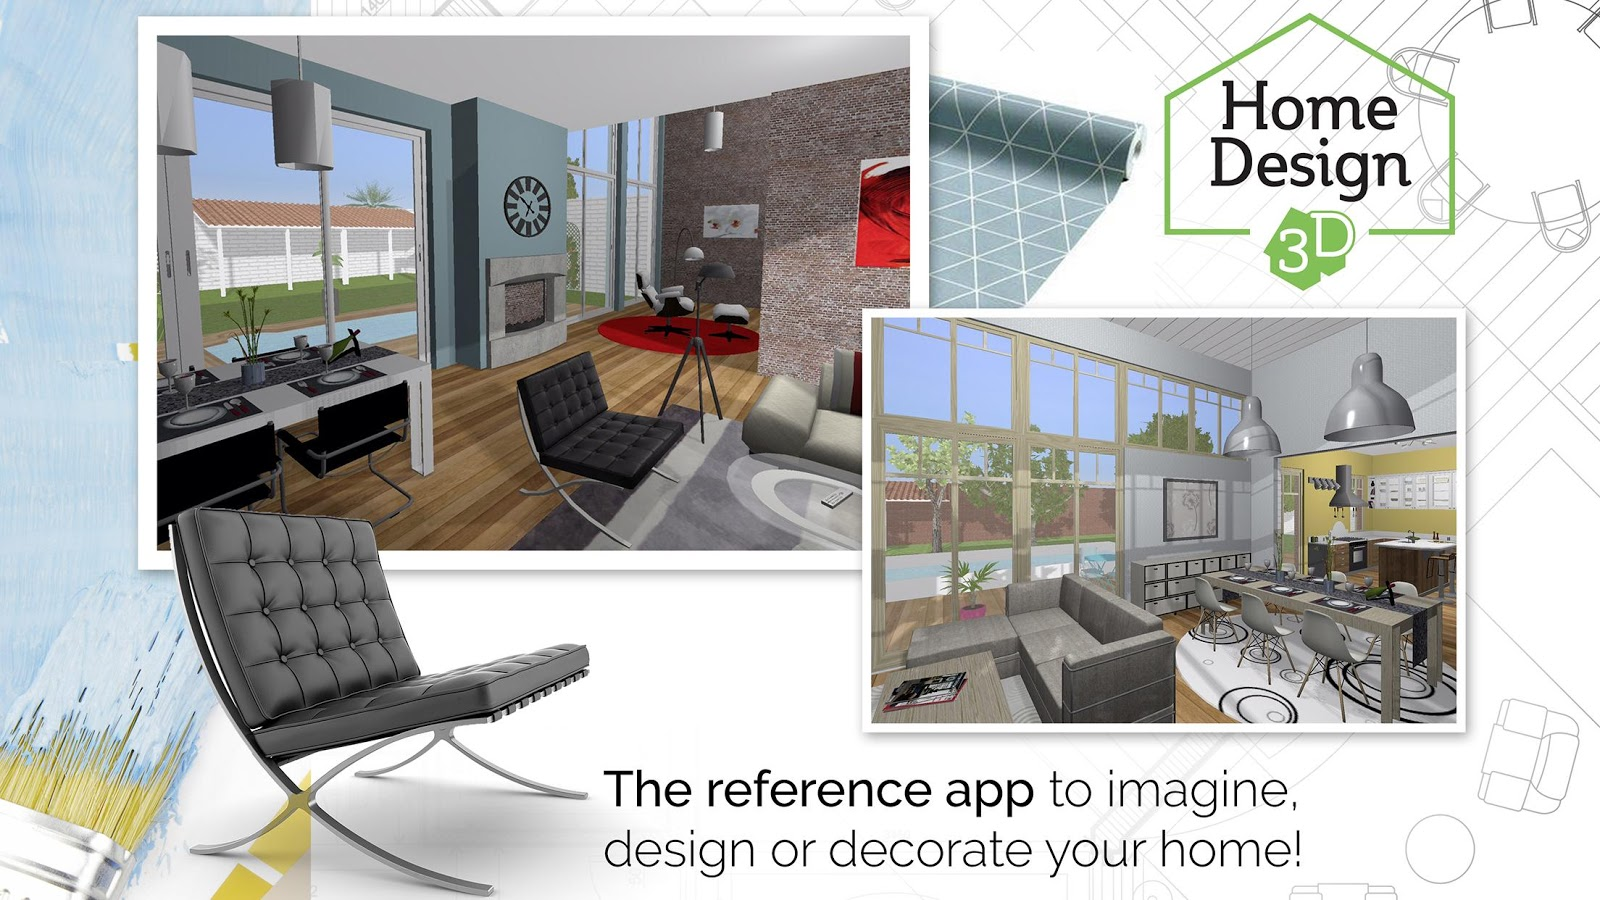 Home design 3d freemium android google play for Interior design decoration app